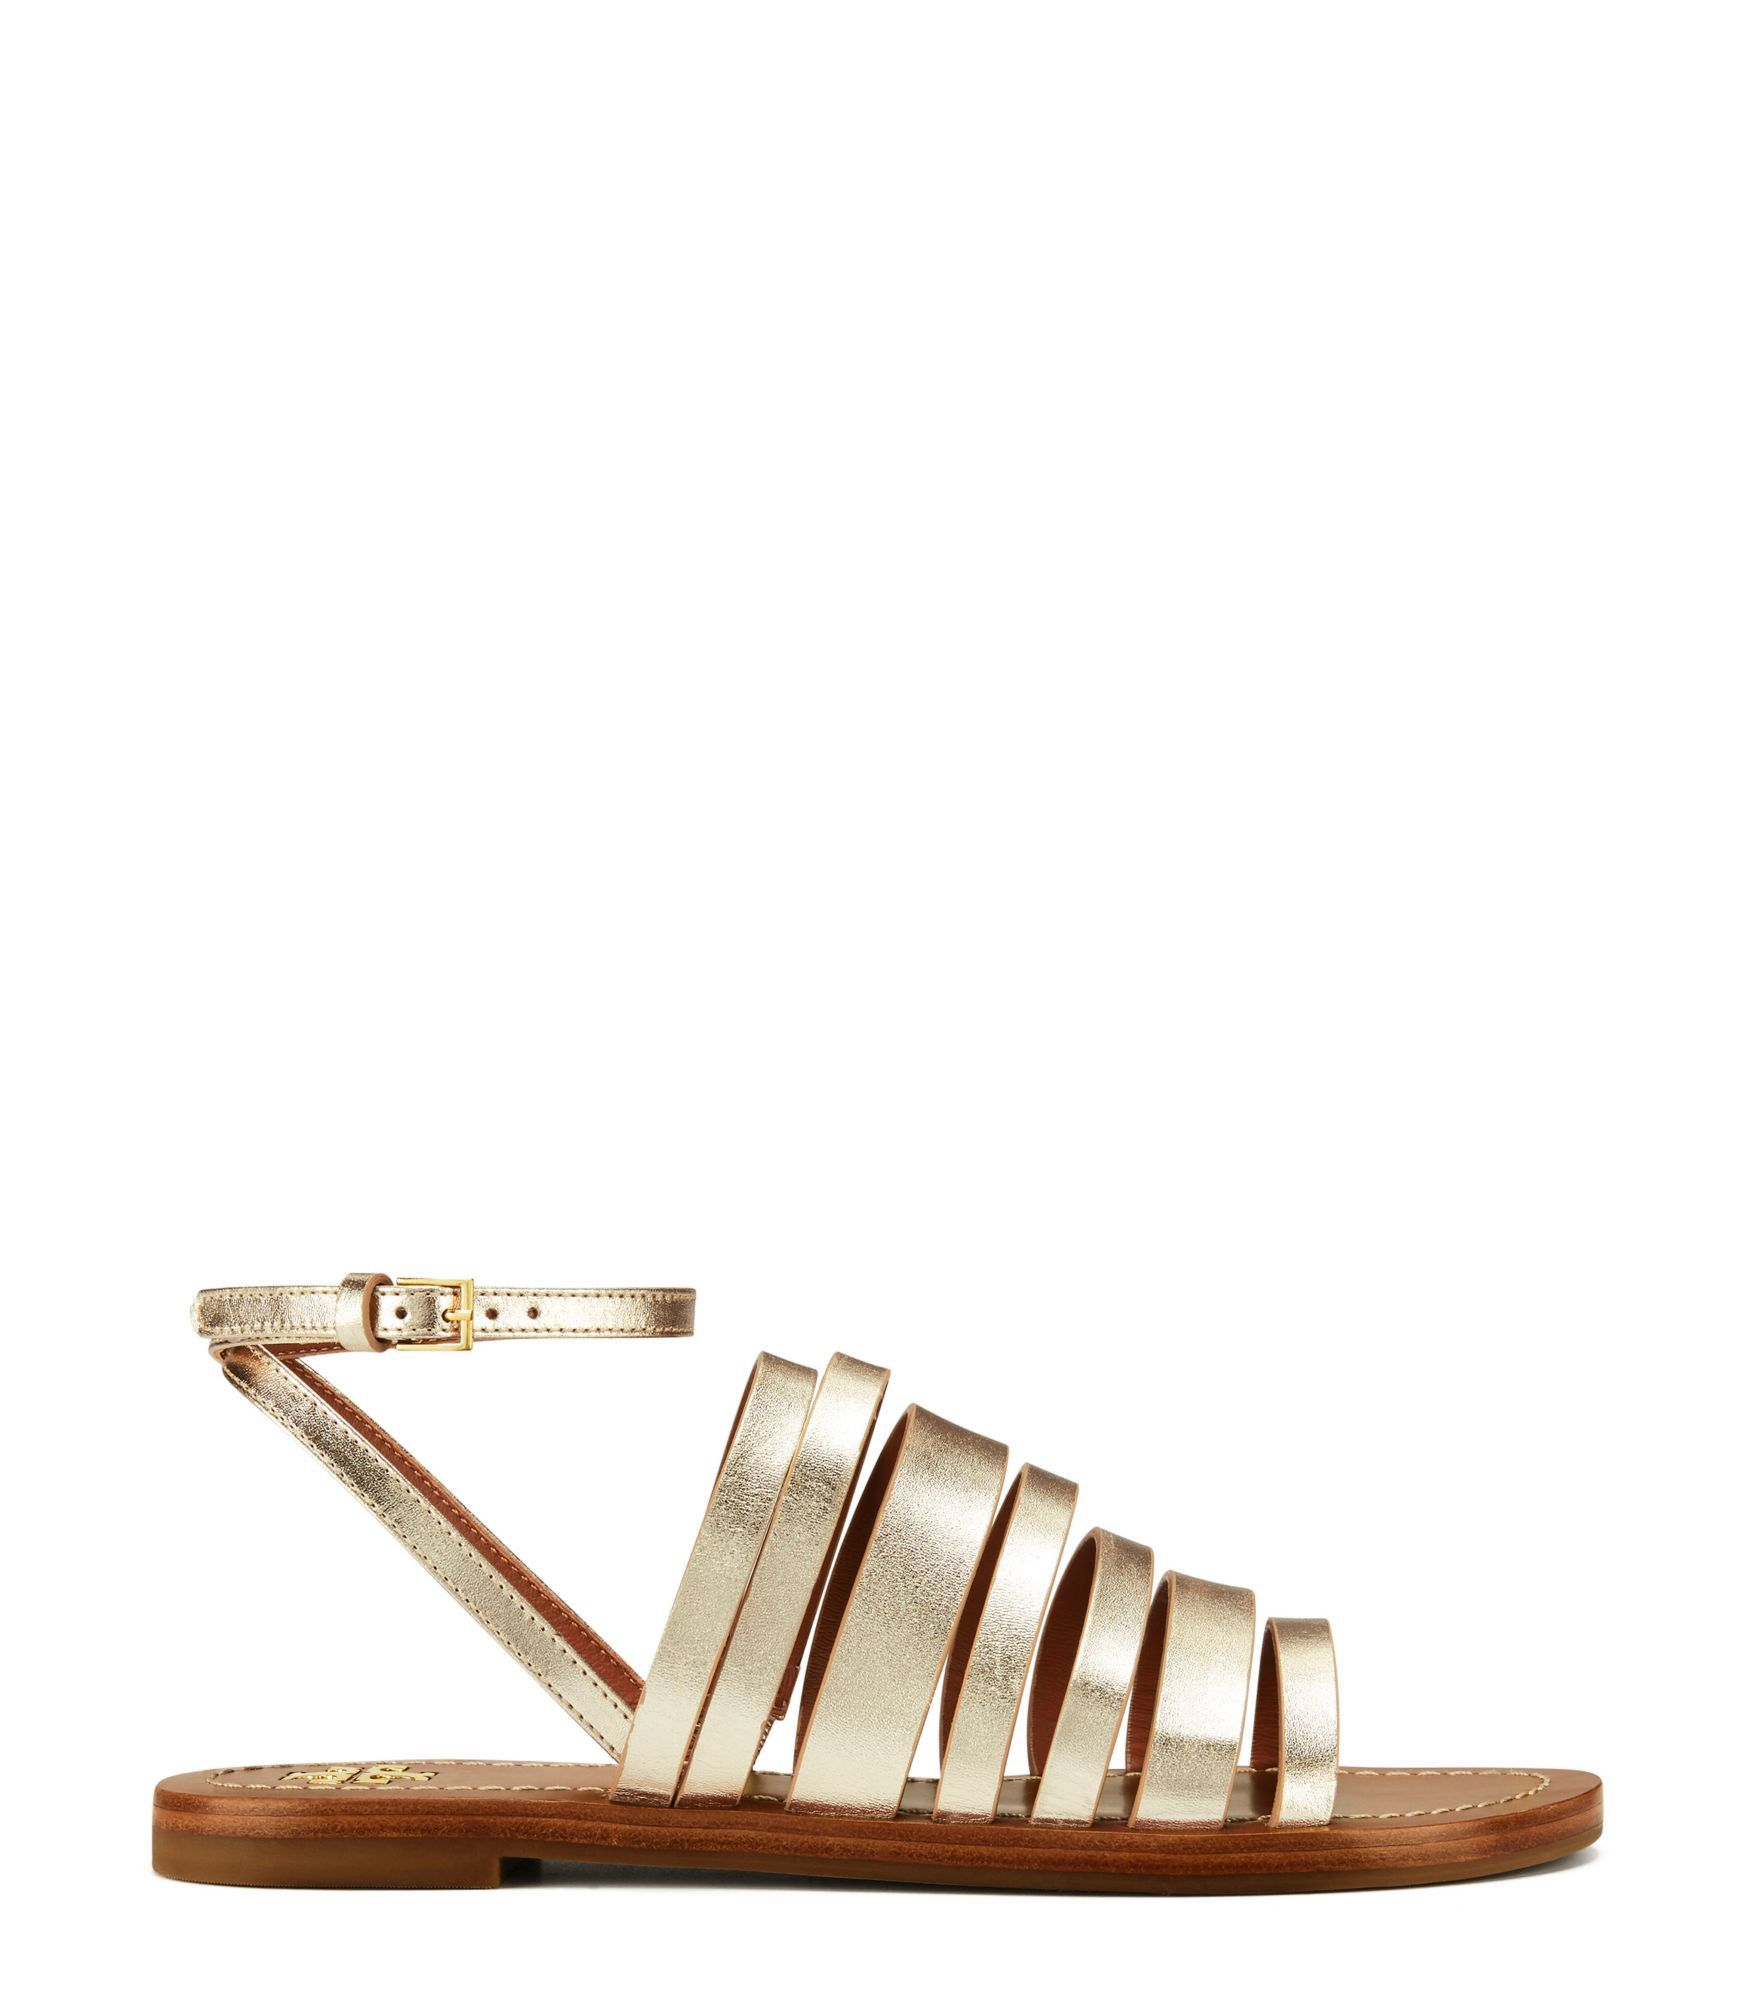 3edc382720c TORY BURCH PATOS ANKLE STRAP SANDAL.  toryburch  shoes  all